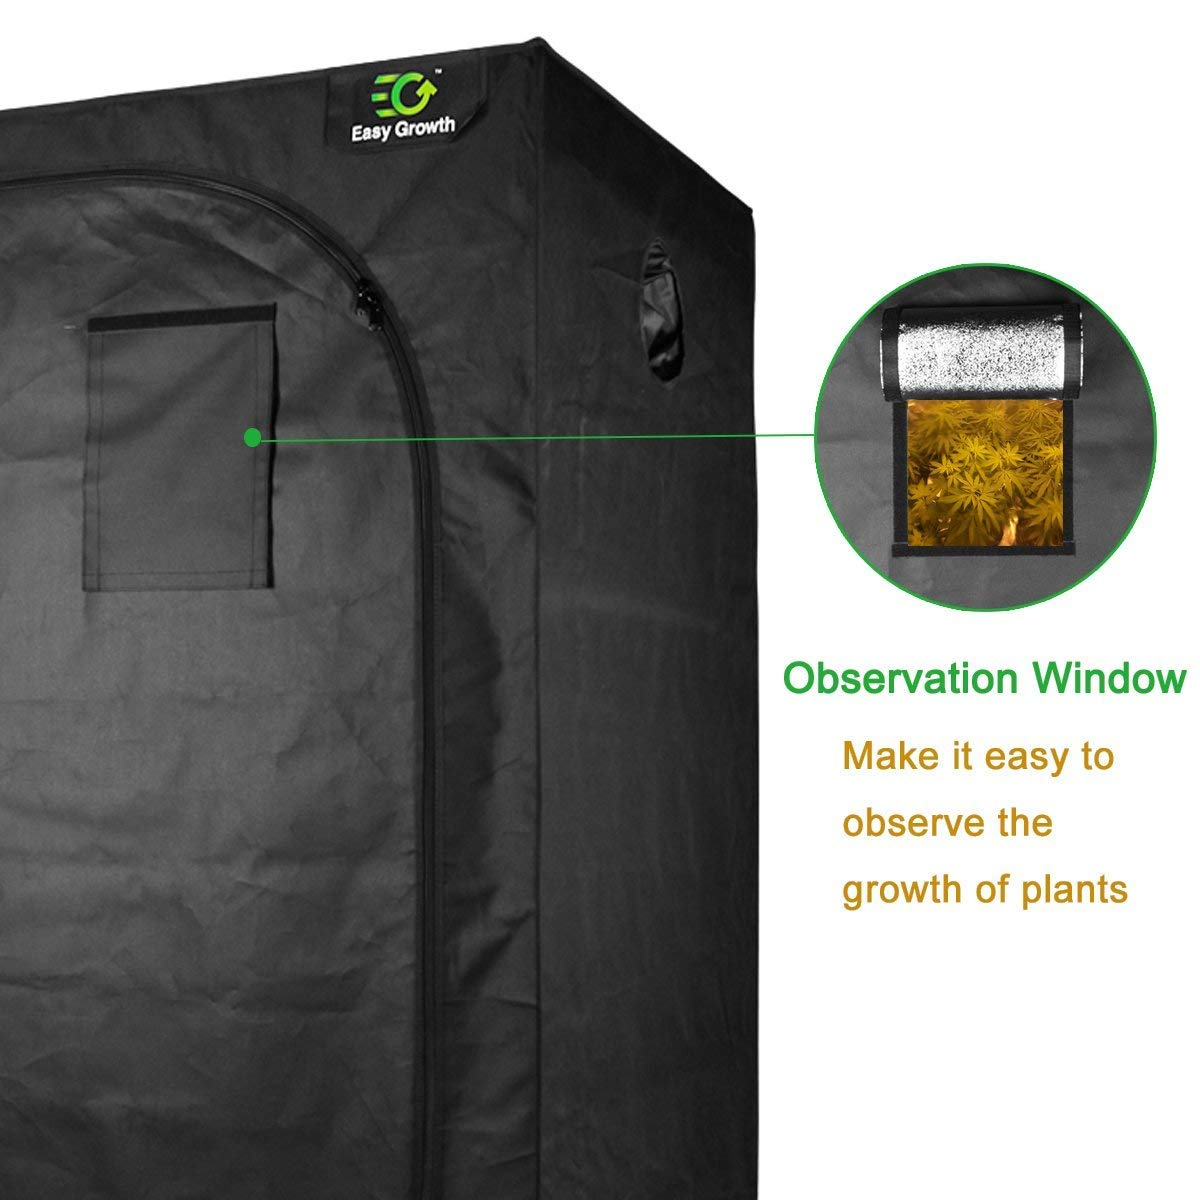 EasyGrowth 40''x40''x80'' Reflective Mylar Hydroponic Grow Tent with Observation Window and Waterproof Floor Tray for Indoor Plant Growing by EasyGrowth (Image #2)